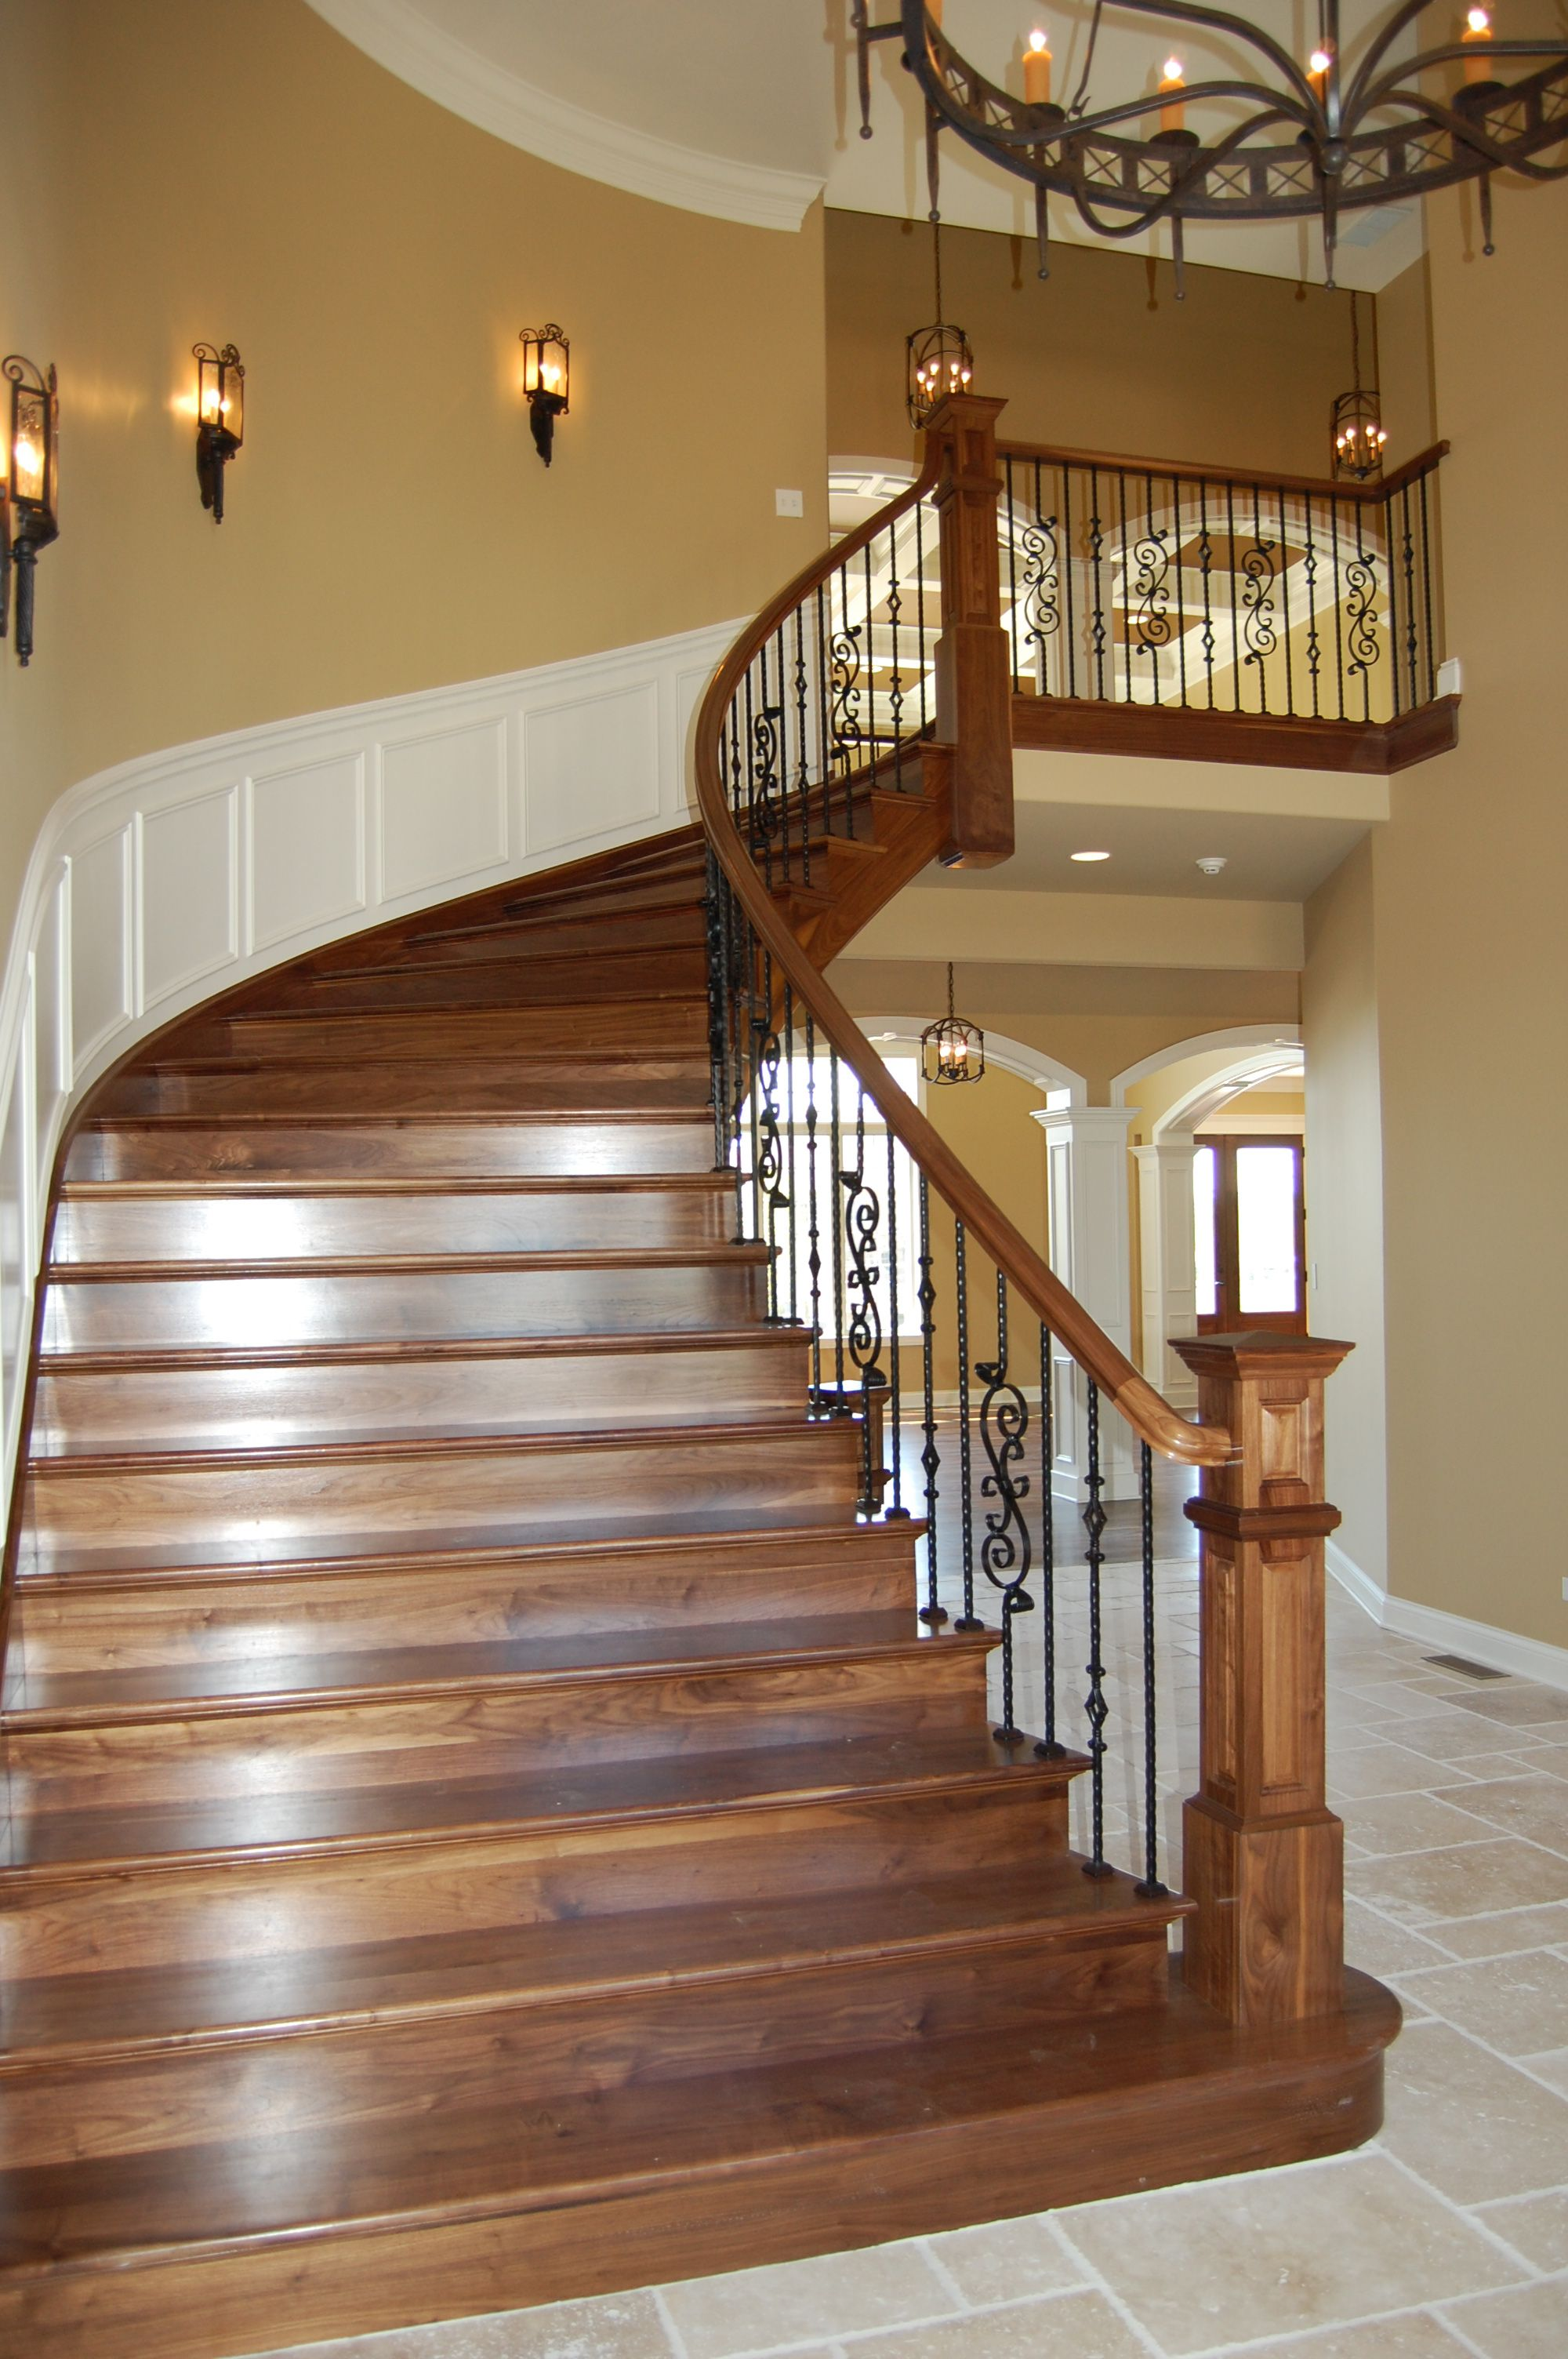 Superb Custom Walnut Stair W/ Wrought Iron Rails RL Builders Custom Luxury Homes